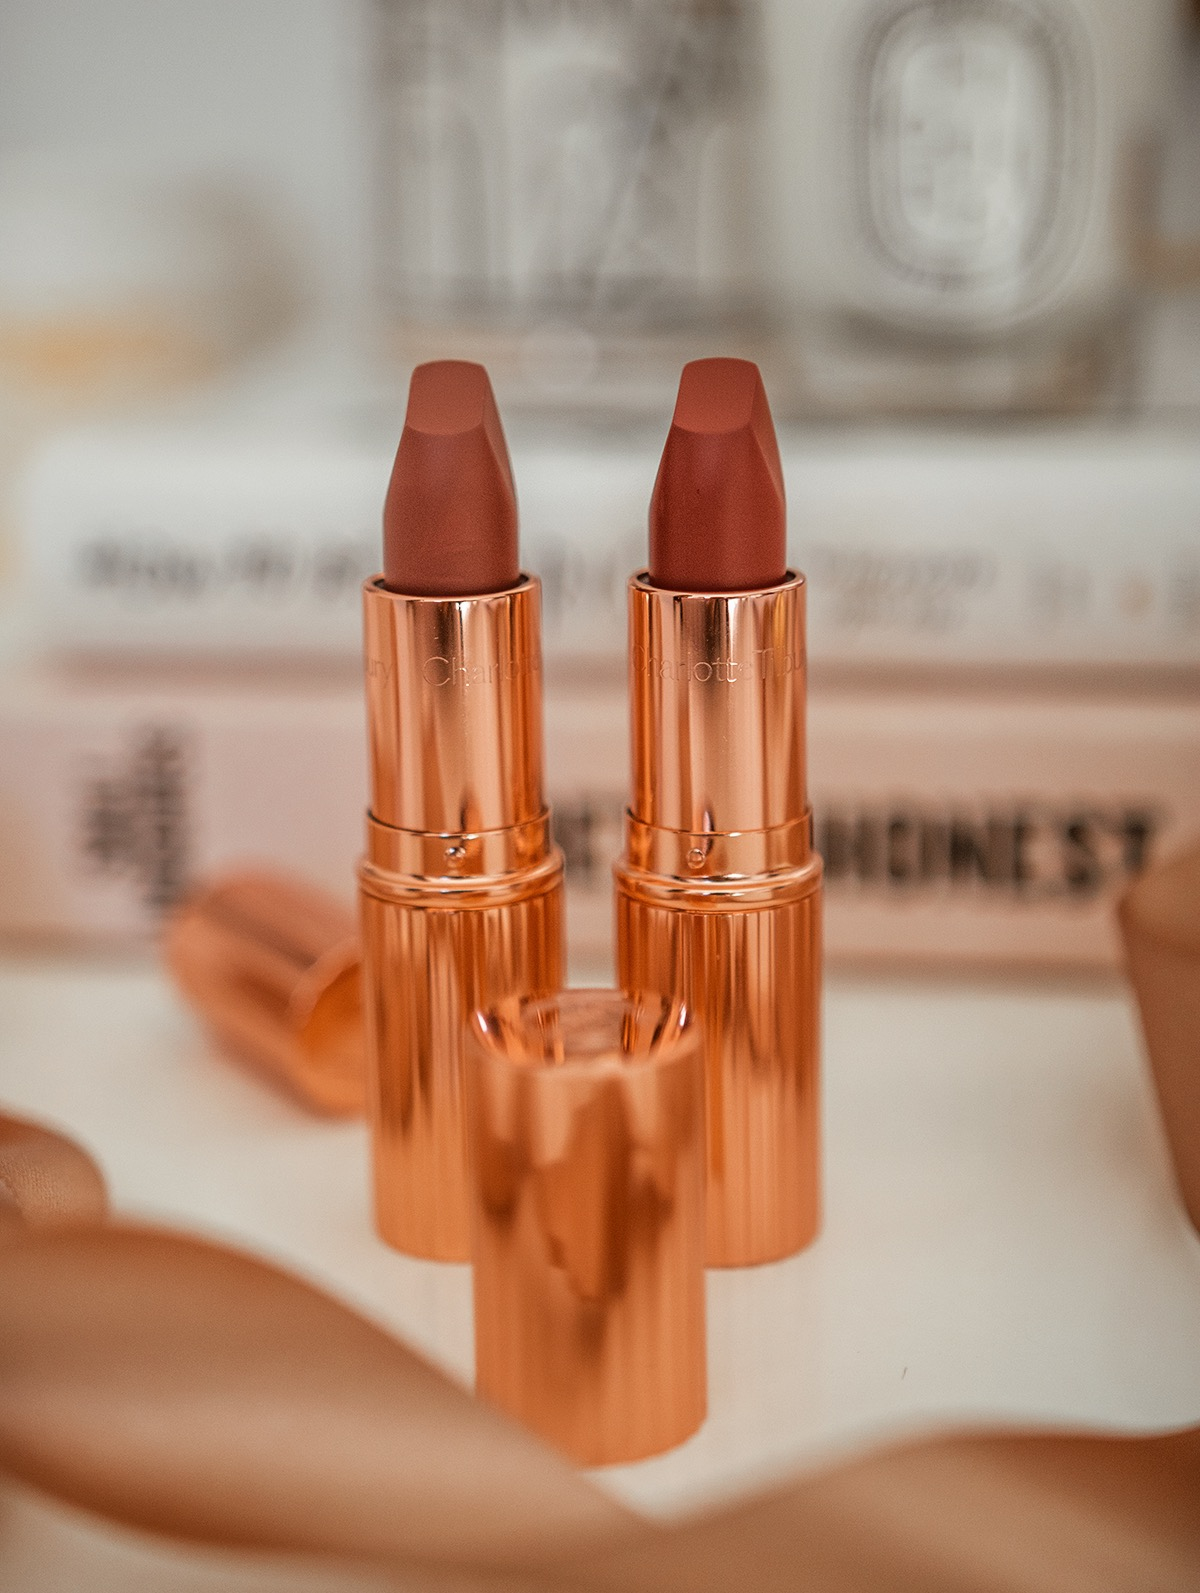 Charlotte Tilbury Limited Edition Super Model Lipsticks Review & Swatches